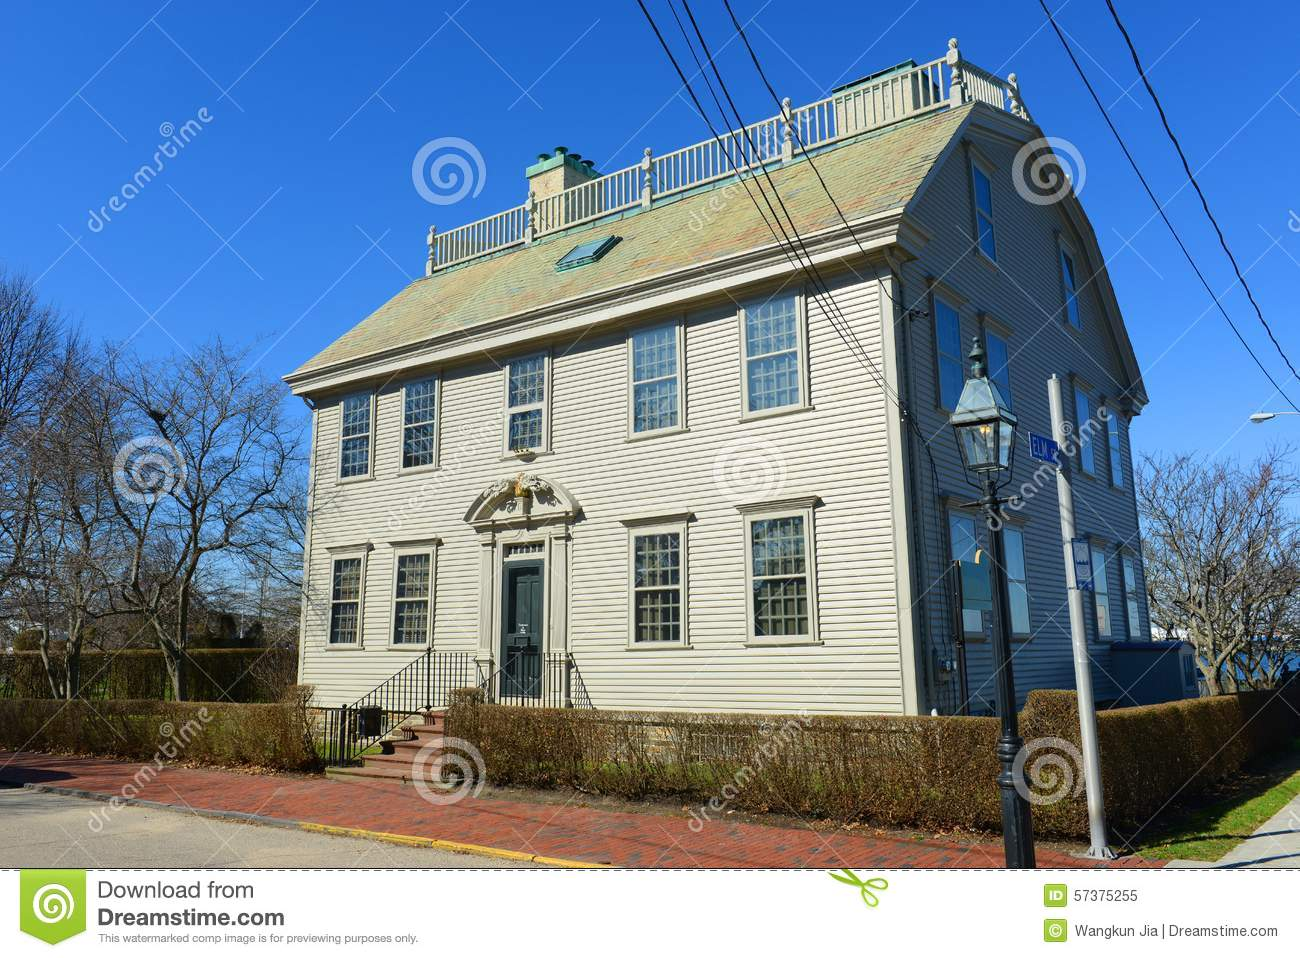 Hunter house rhode island usa stock photo image 57375255 - The home hunter ...